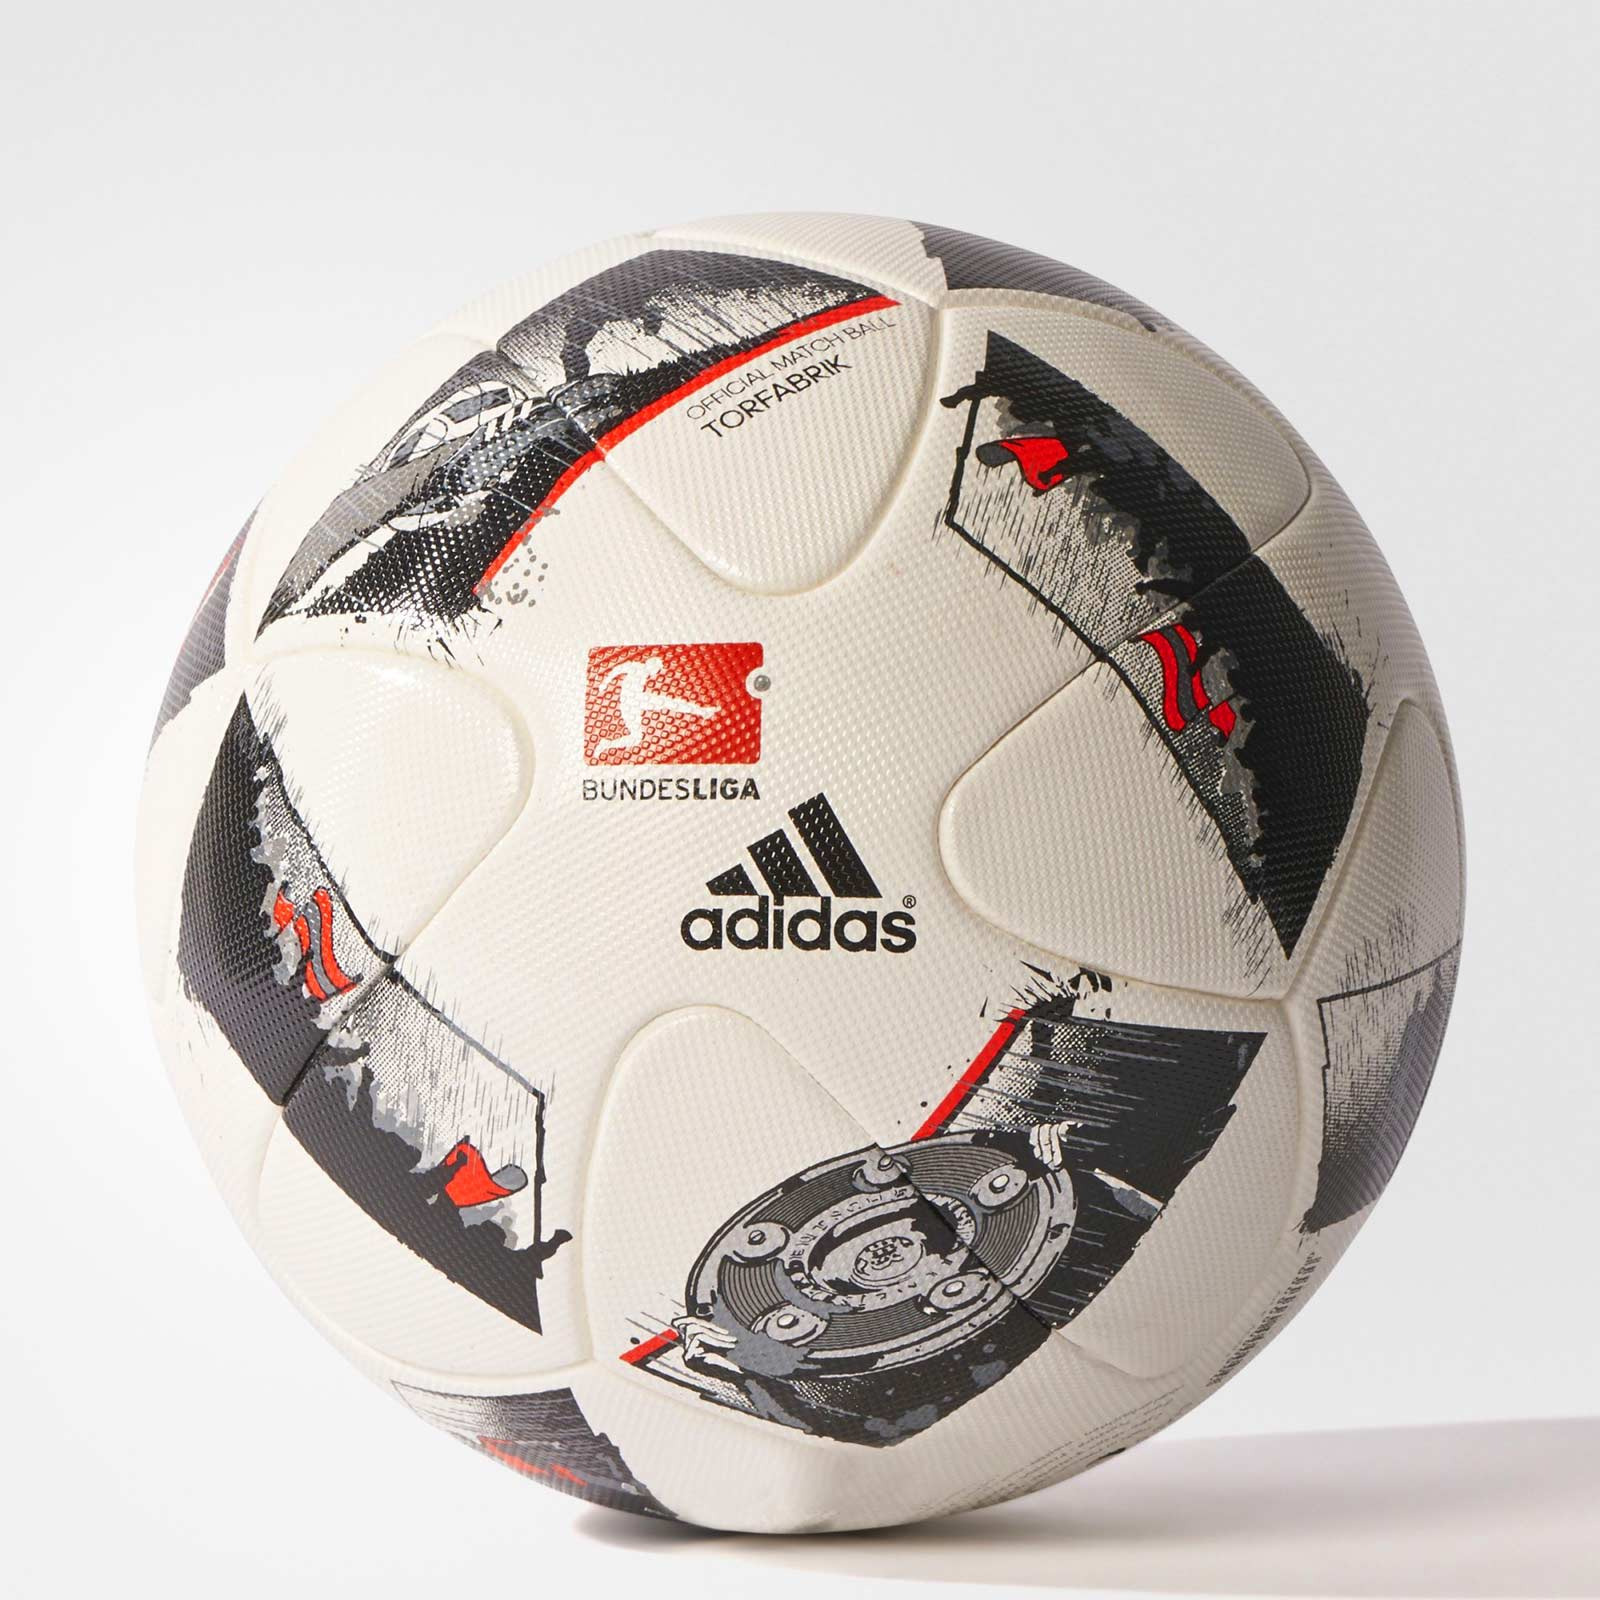 offizieller adidas torfabrik bundesliga 16 17 spielball. Black Bedroom Furniture Sets. Home Design Ideas